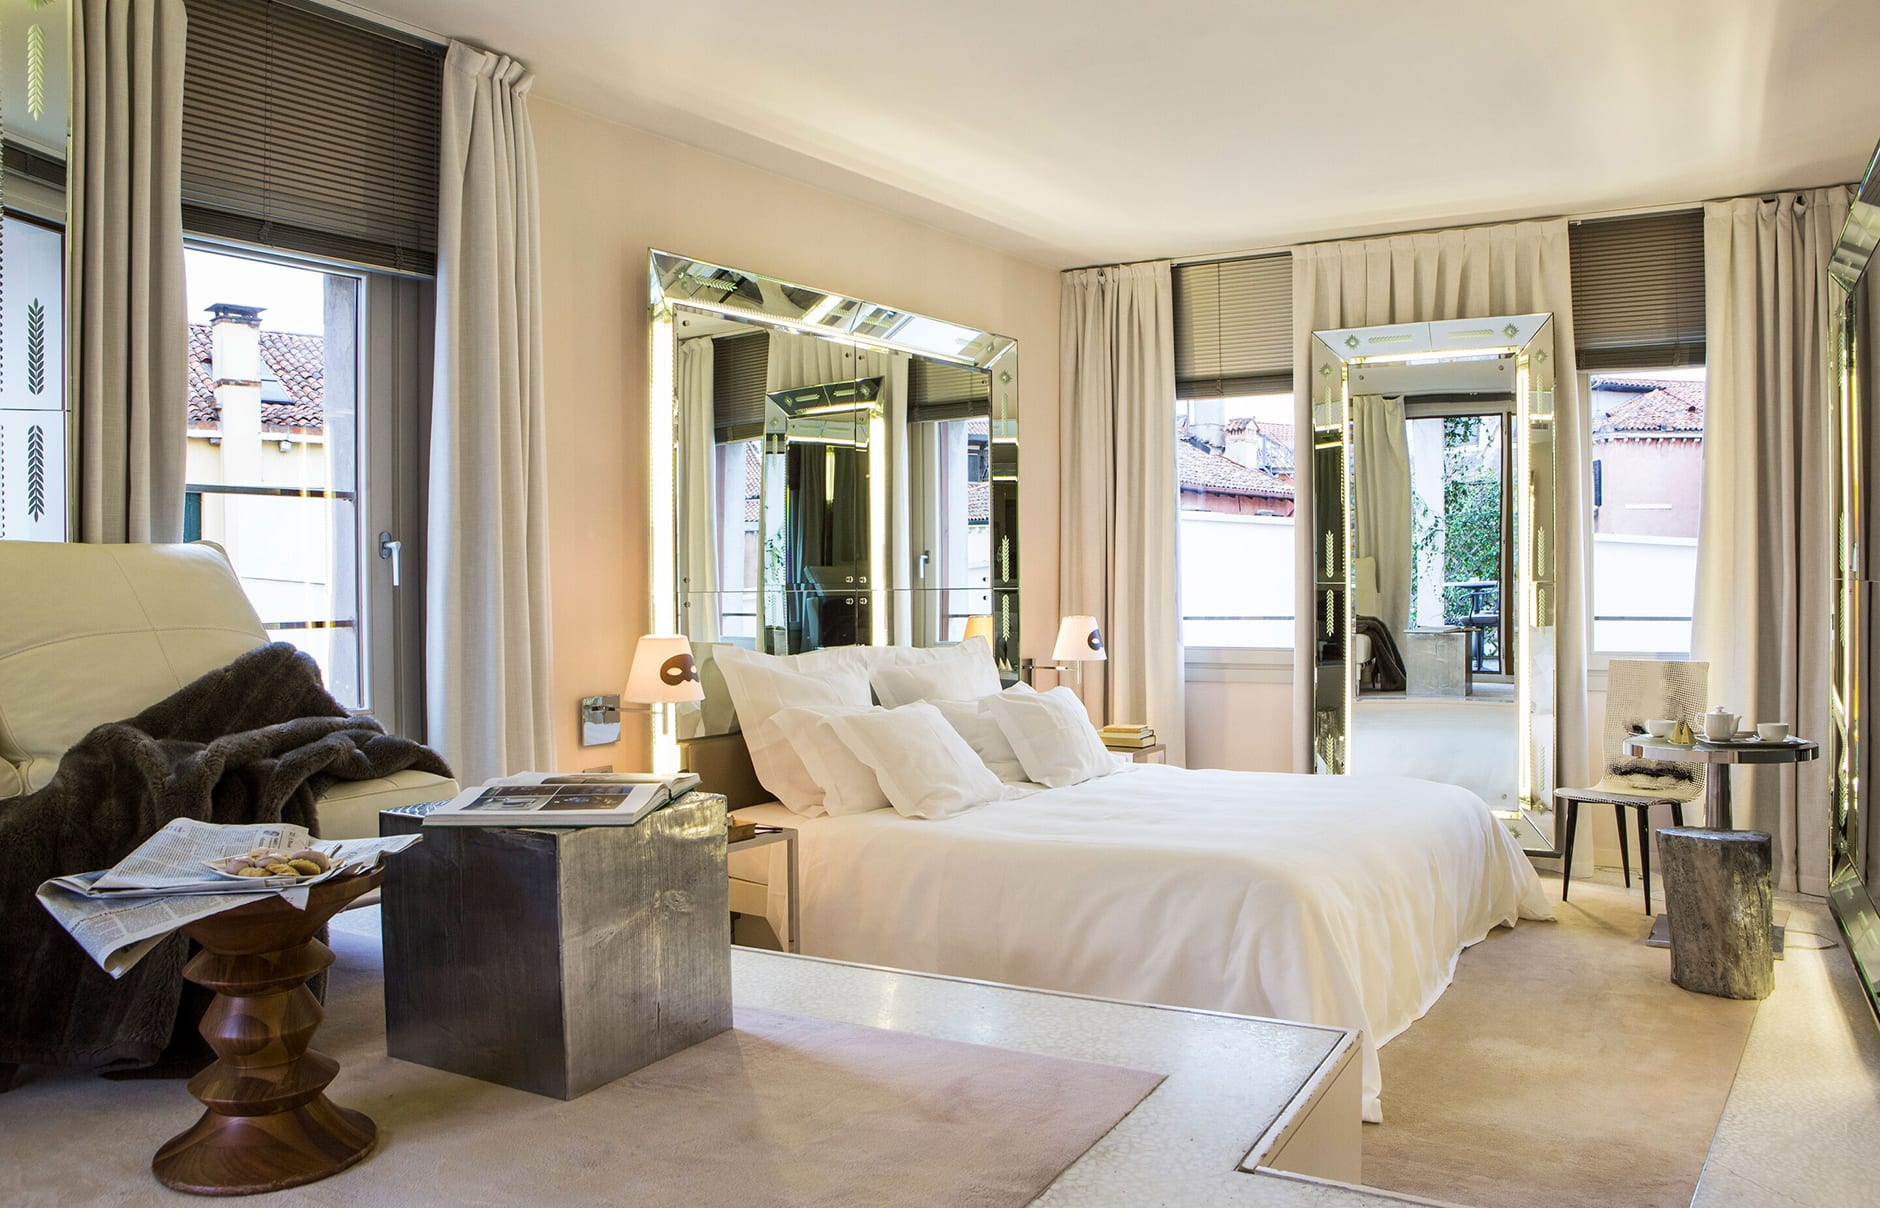 Palazzina Grassi, Venice, Italy. Hotel Review by TravelPlusStyle. Photo © Palazzina G